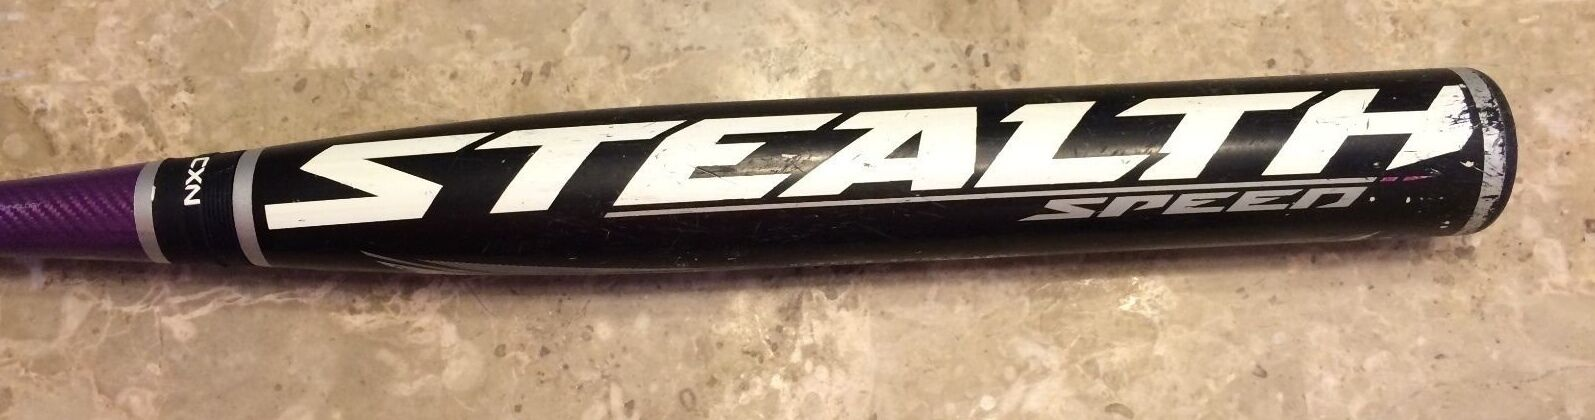 Details about  /New Other Easton SSR4B 31//22 Stealth Speed Fastpitch Softball Bat